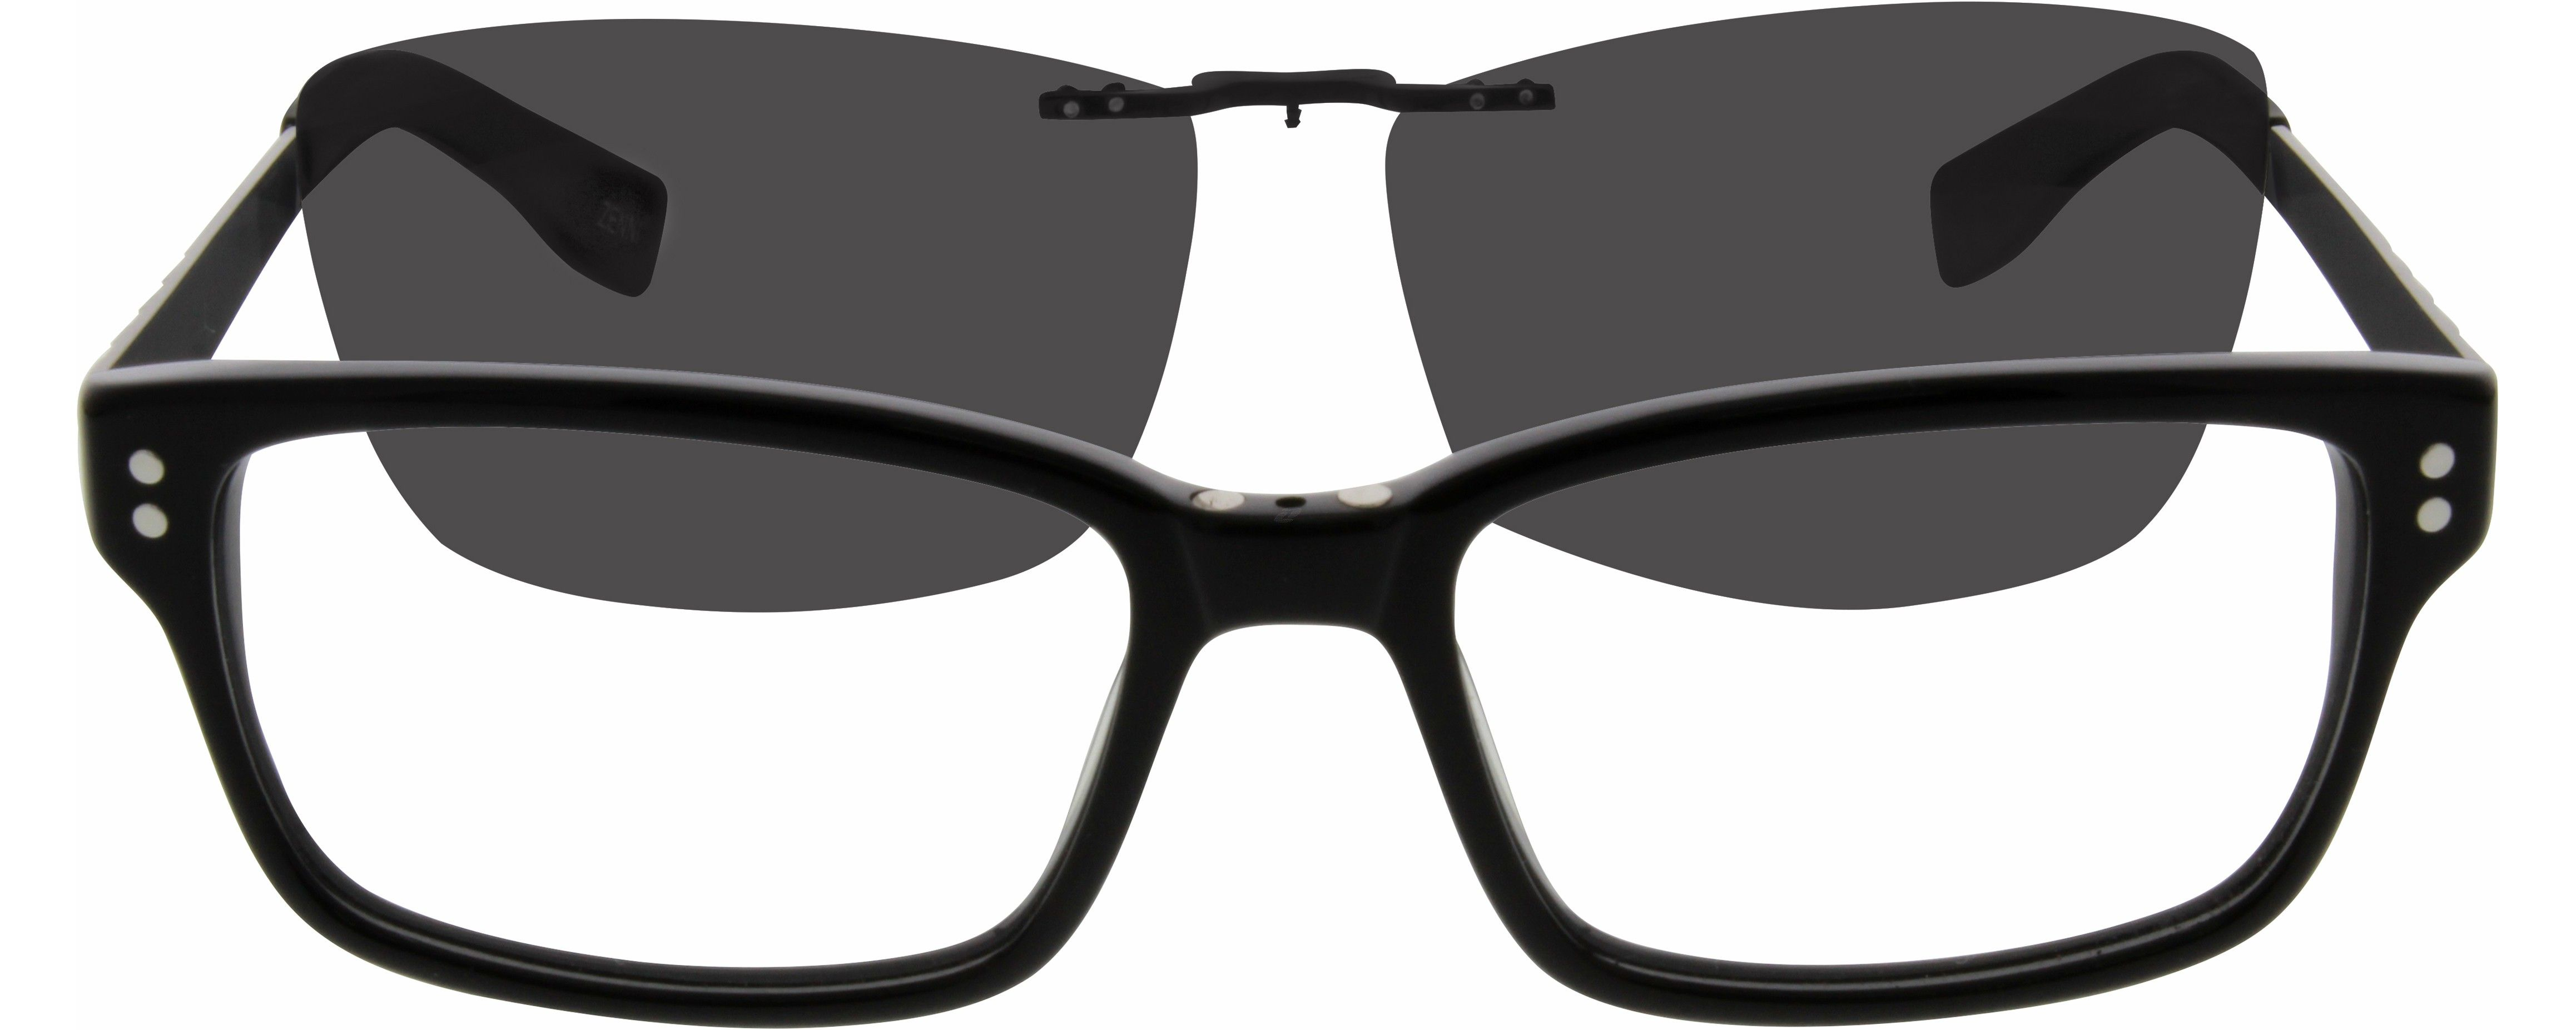 a175672e06 560221 Acetate Full-Rim Frame with Polarized Magnetic Snap-on Sunlens and  Designer Stainless Steel Temples